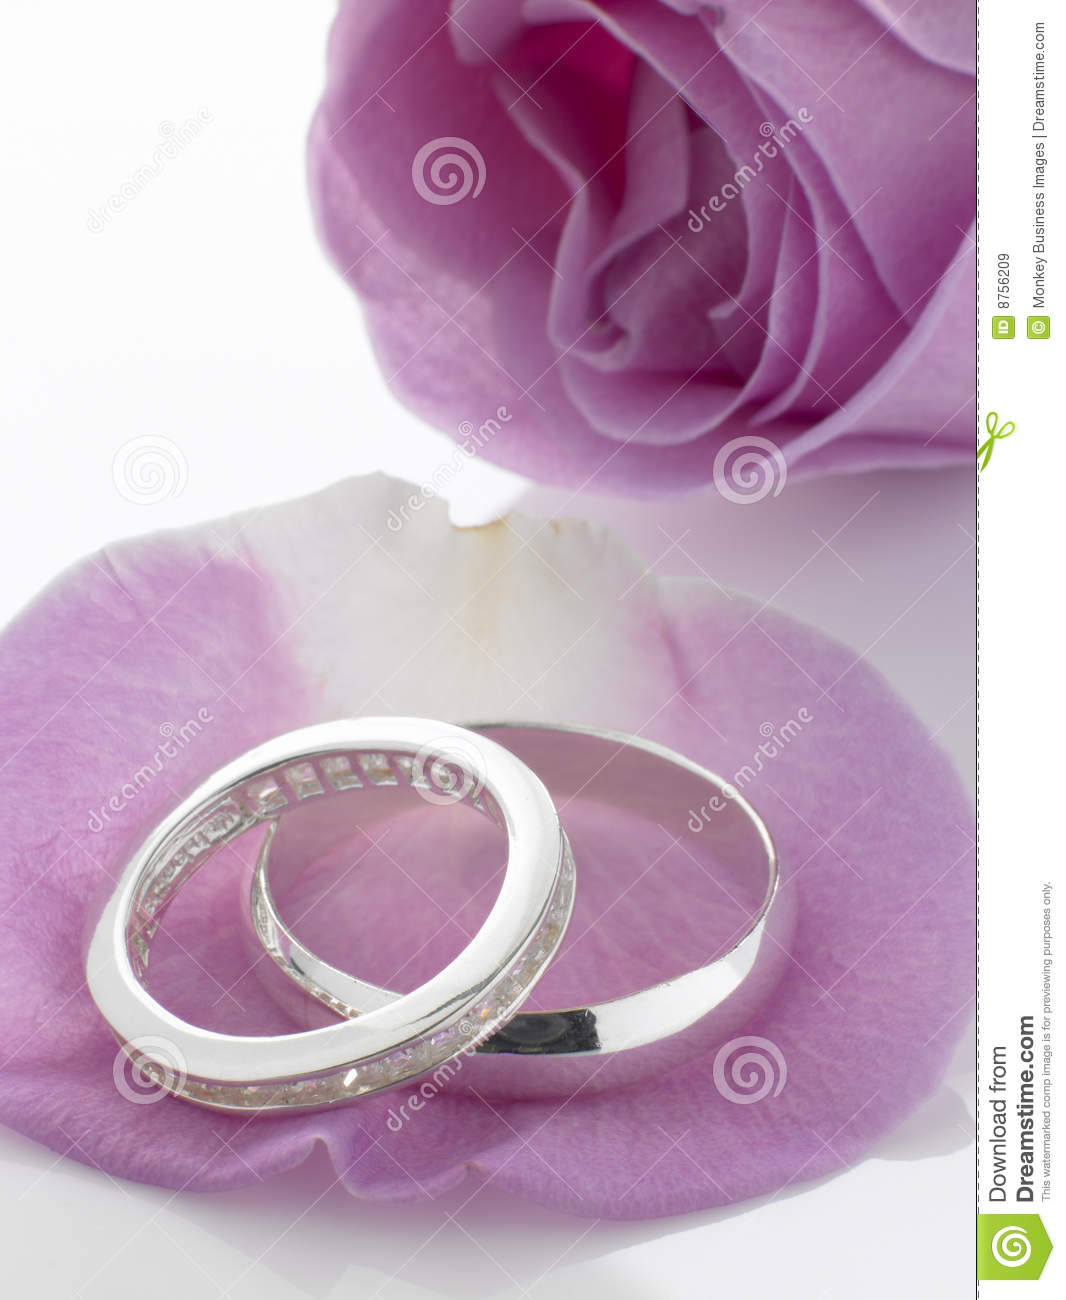 Silver Wedding Rings Resting On Rose Petals Stock Image - Image of ...